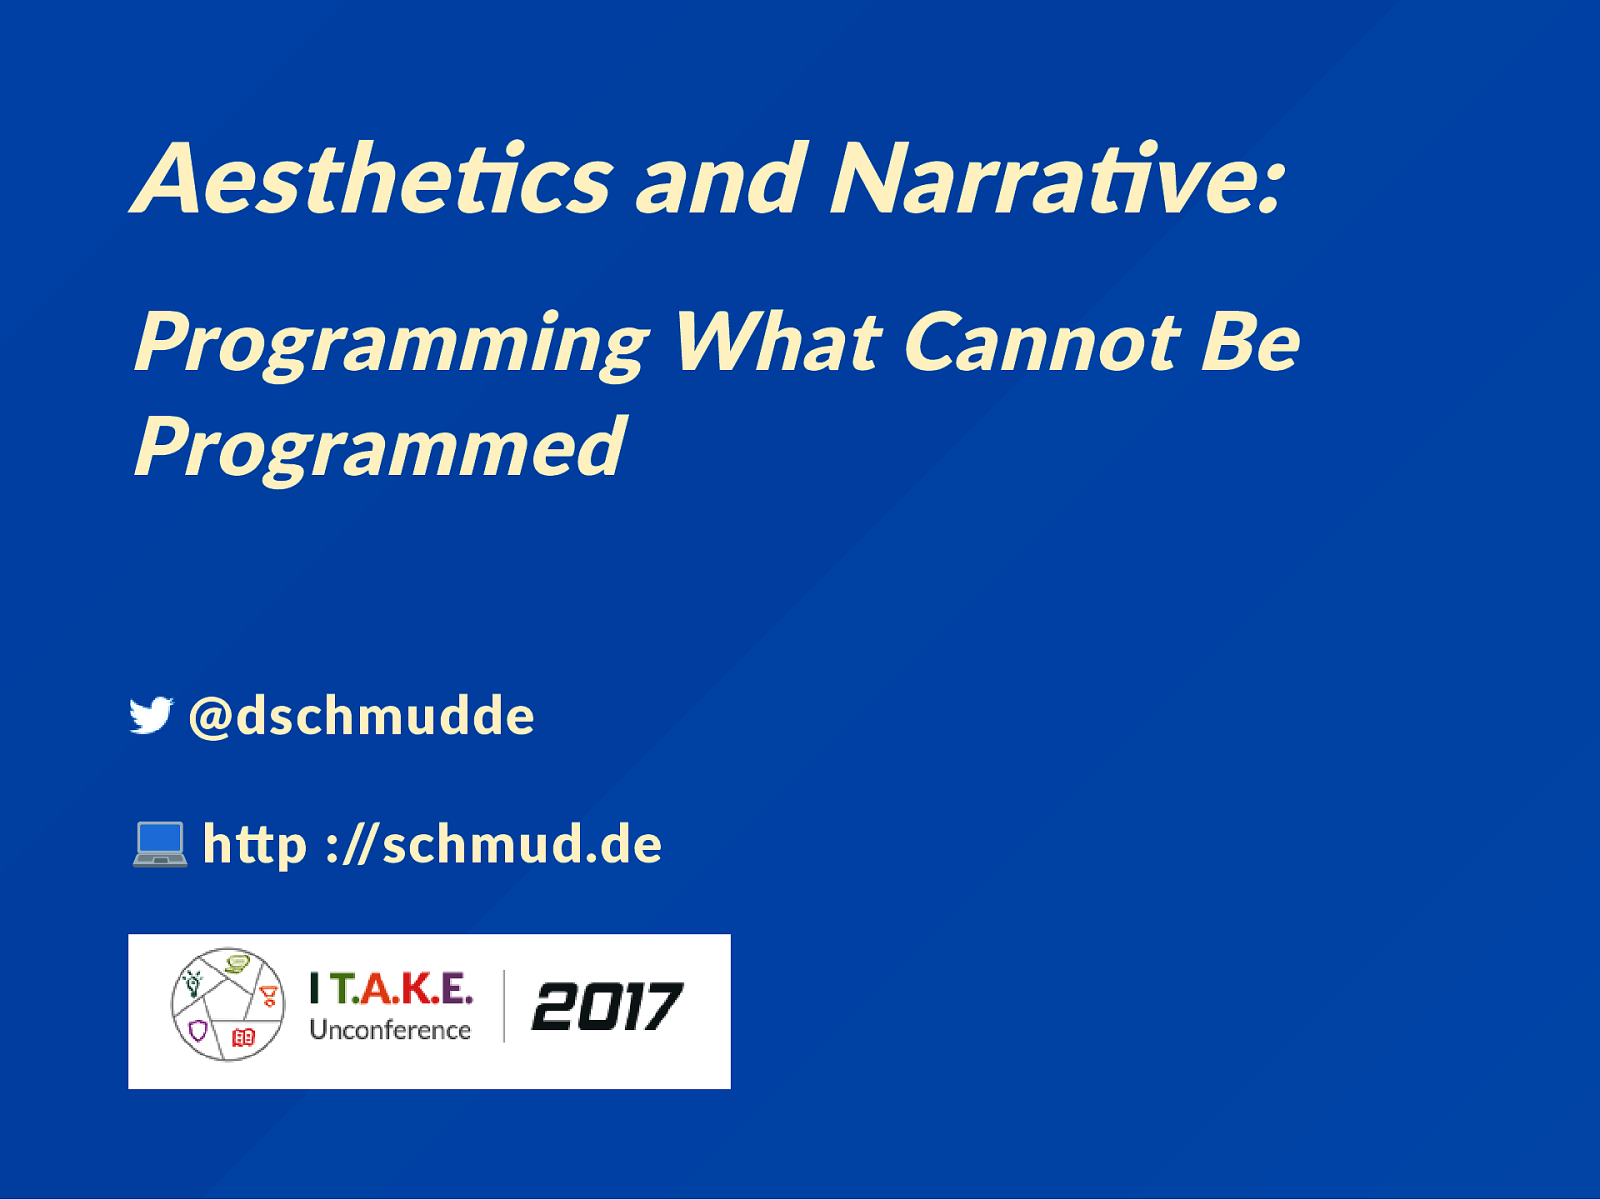 Aesthetics and Narrative: Programming What Cannot Be Programmed